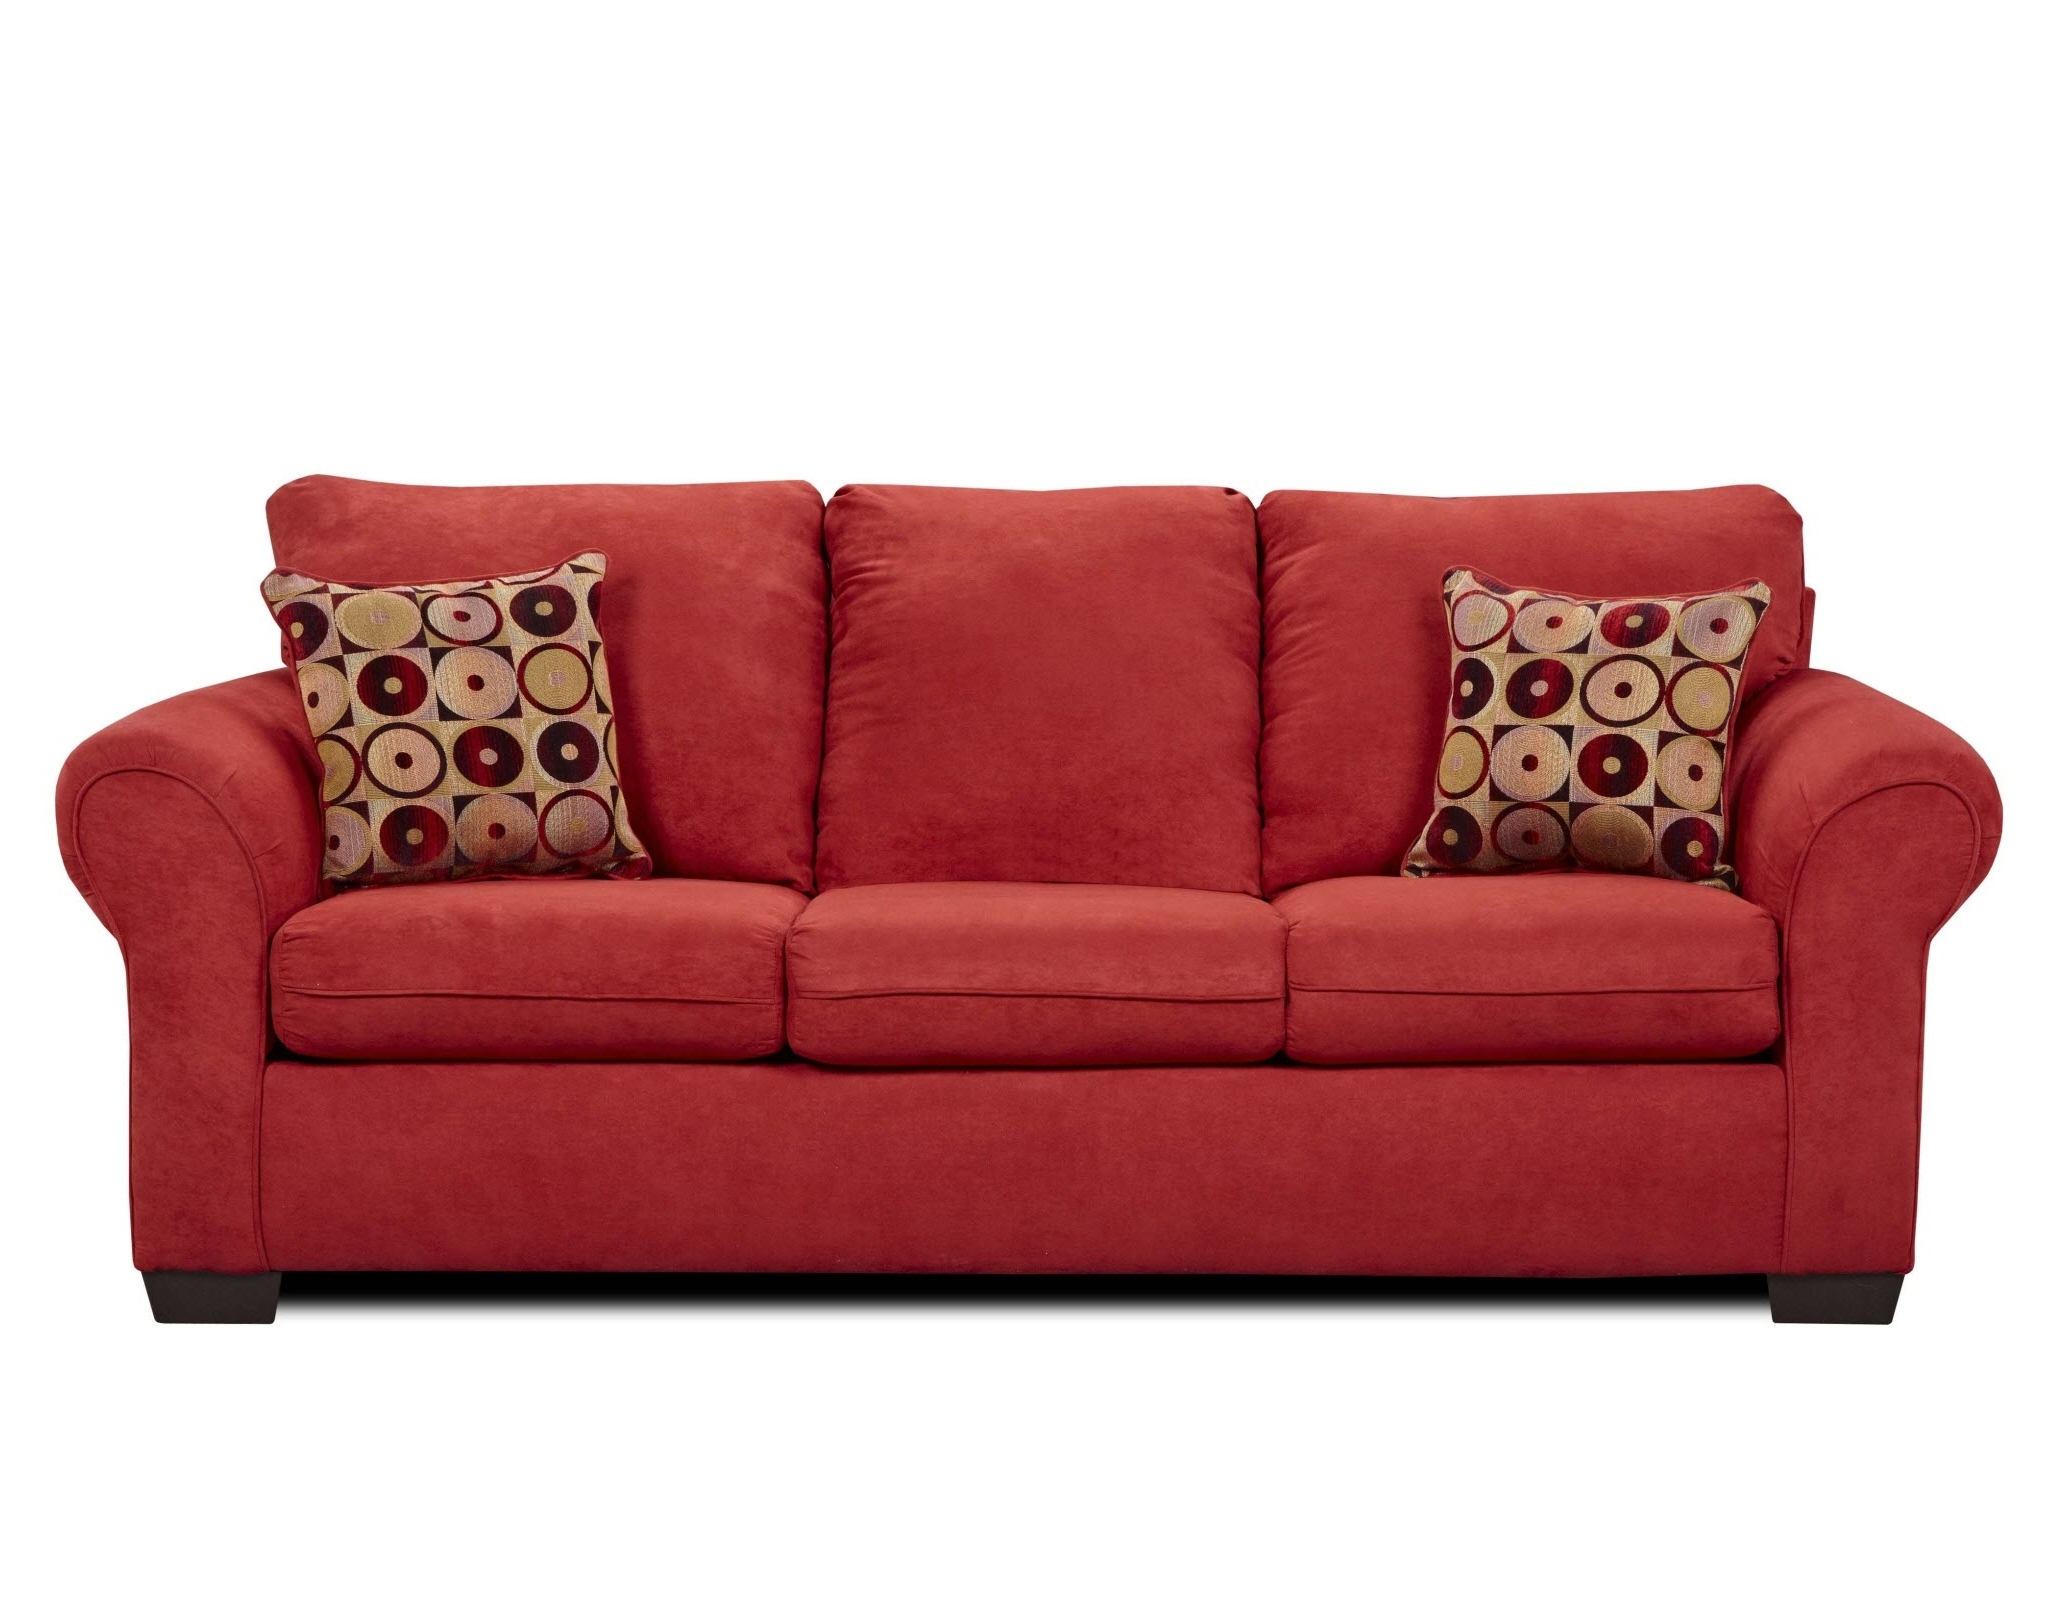 Red Sofa Chairs Pertaining To Widely Used Fabric Red Sofa Sets Attached Back (View 5 of 20)